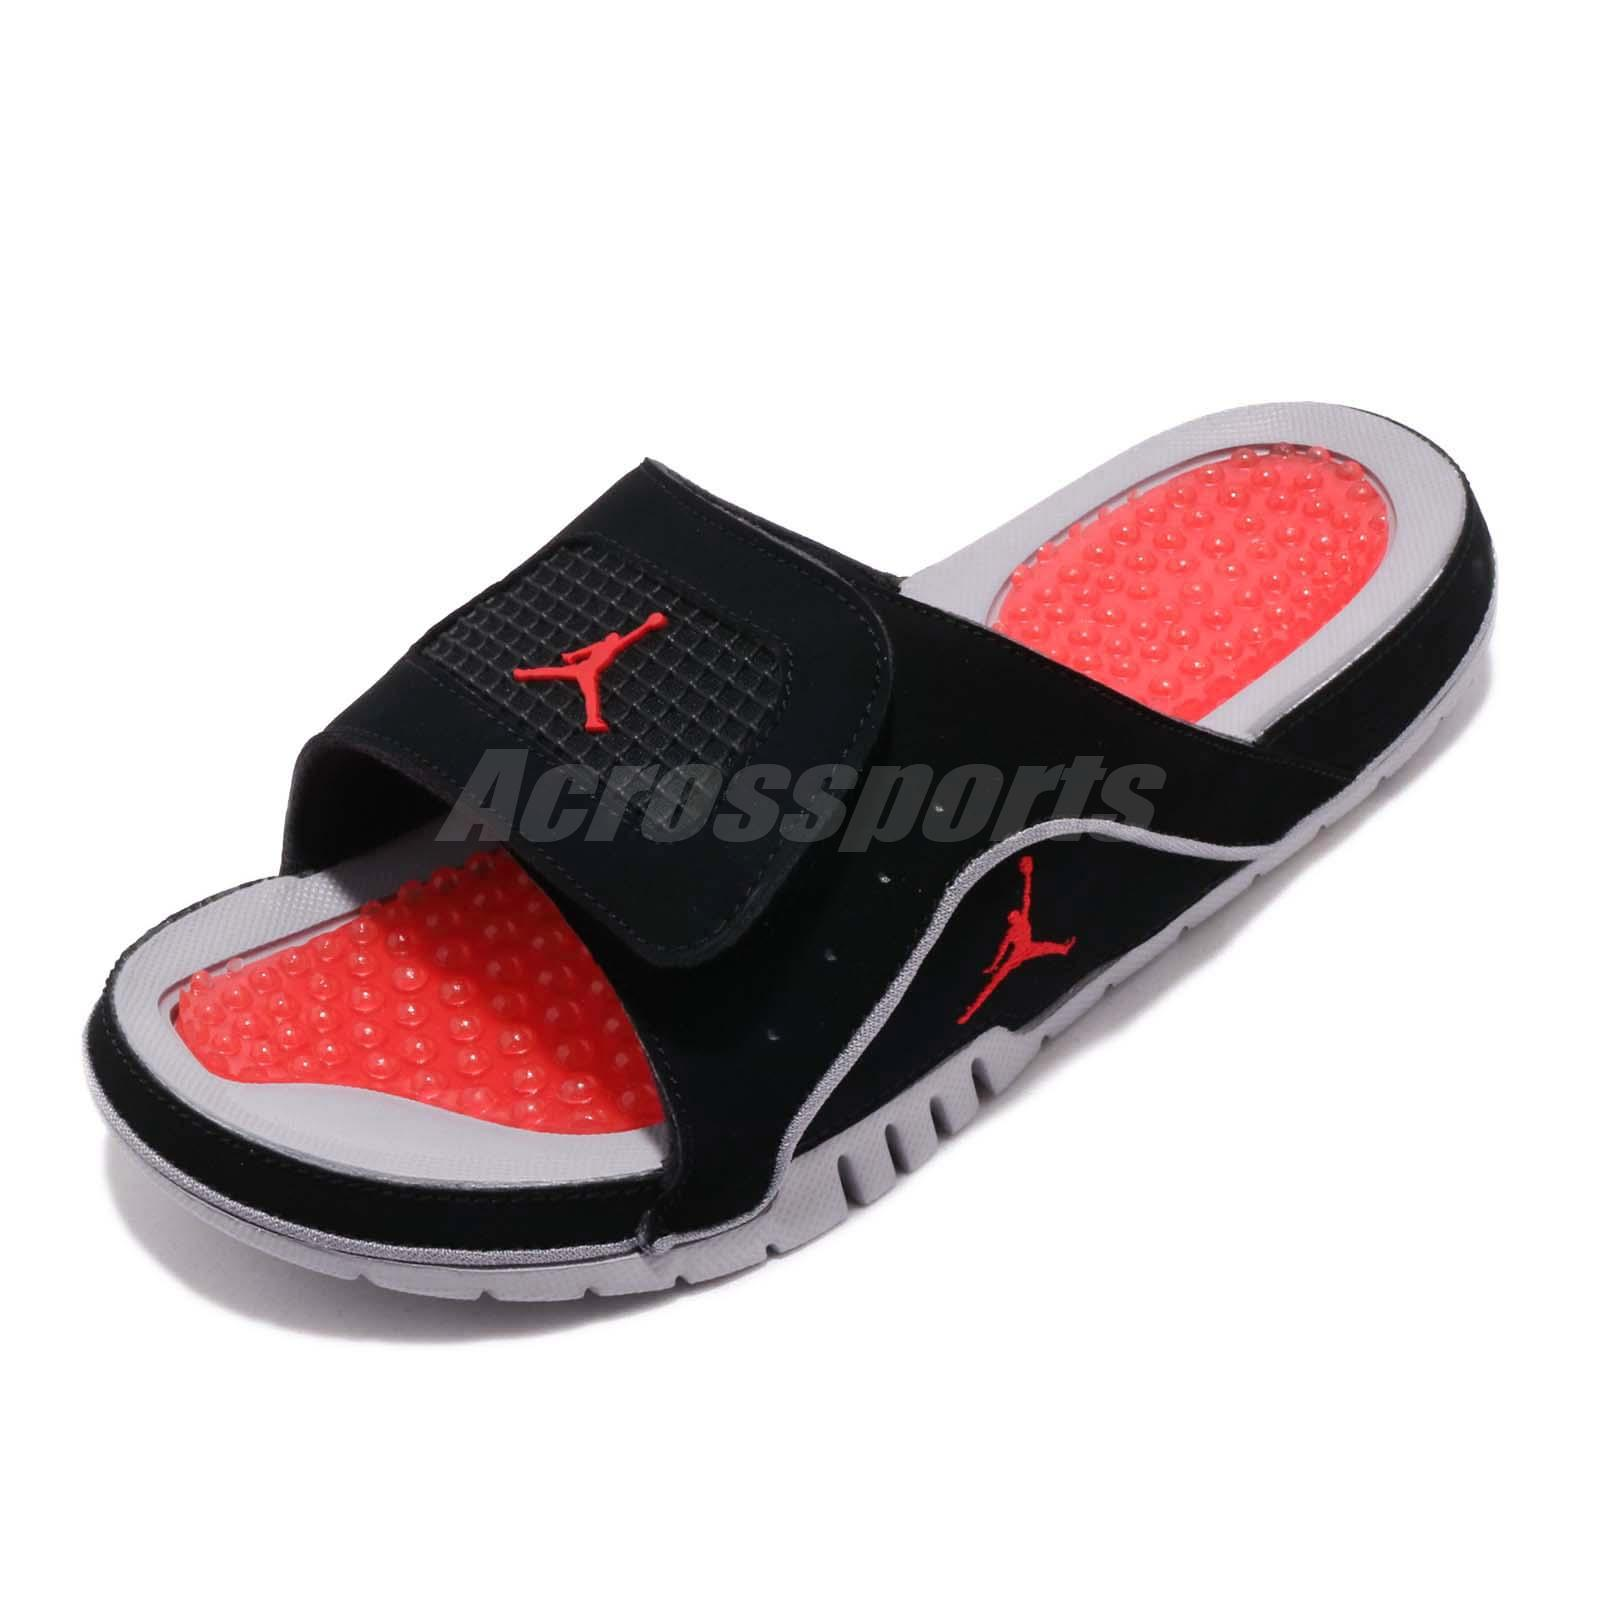 72bedba79 Nike Jordan Hydro IV 4 Retro Black Red Grey Men Sports Sandals Slides  532225-006